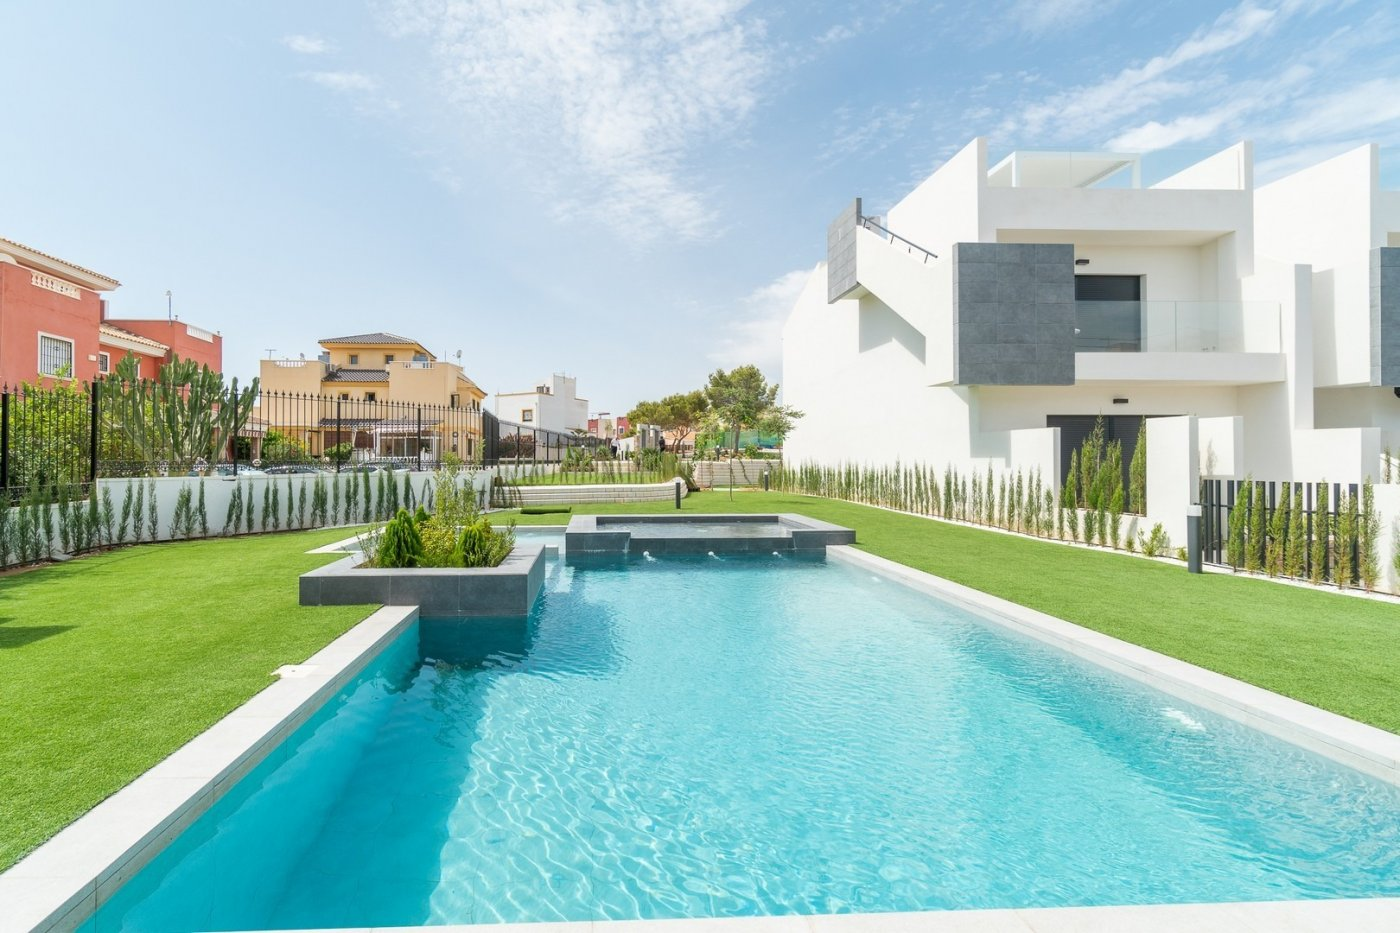 Bungalow for sale in Los balcones, Torrevieja